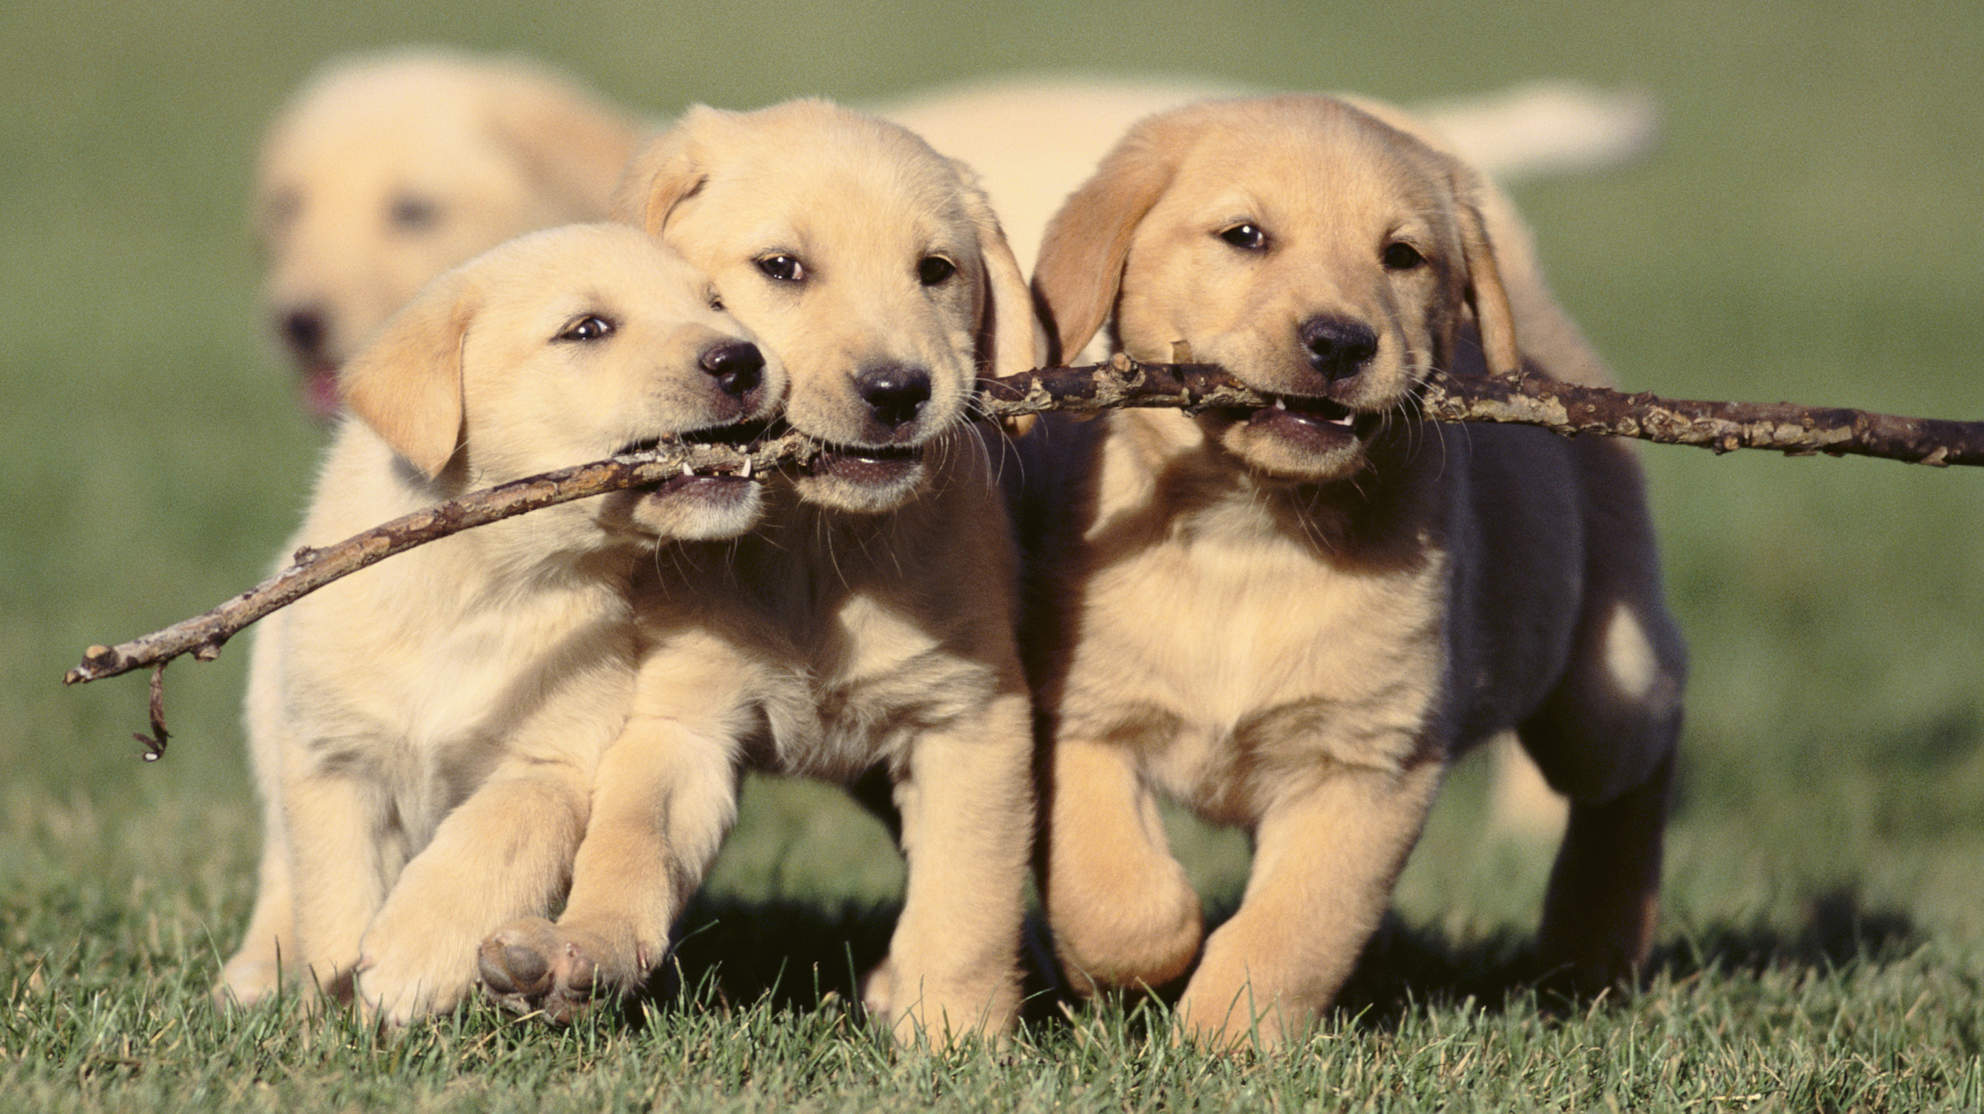 Puppies and Perks, how to keep Employees Happy